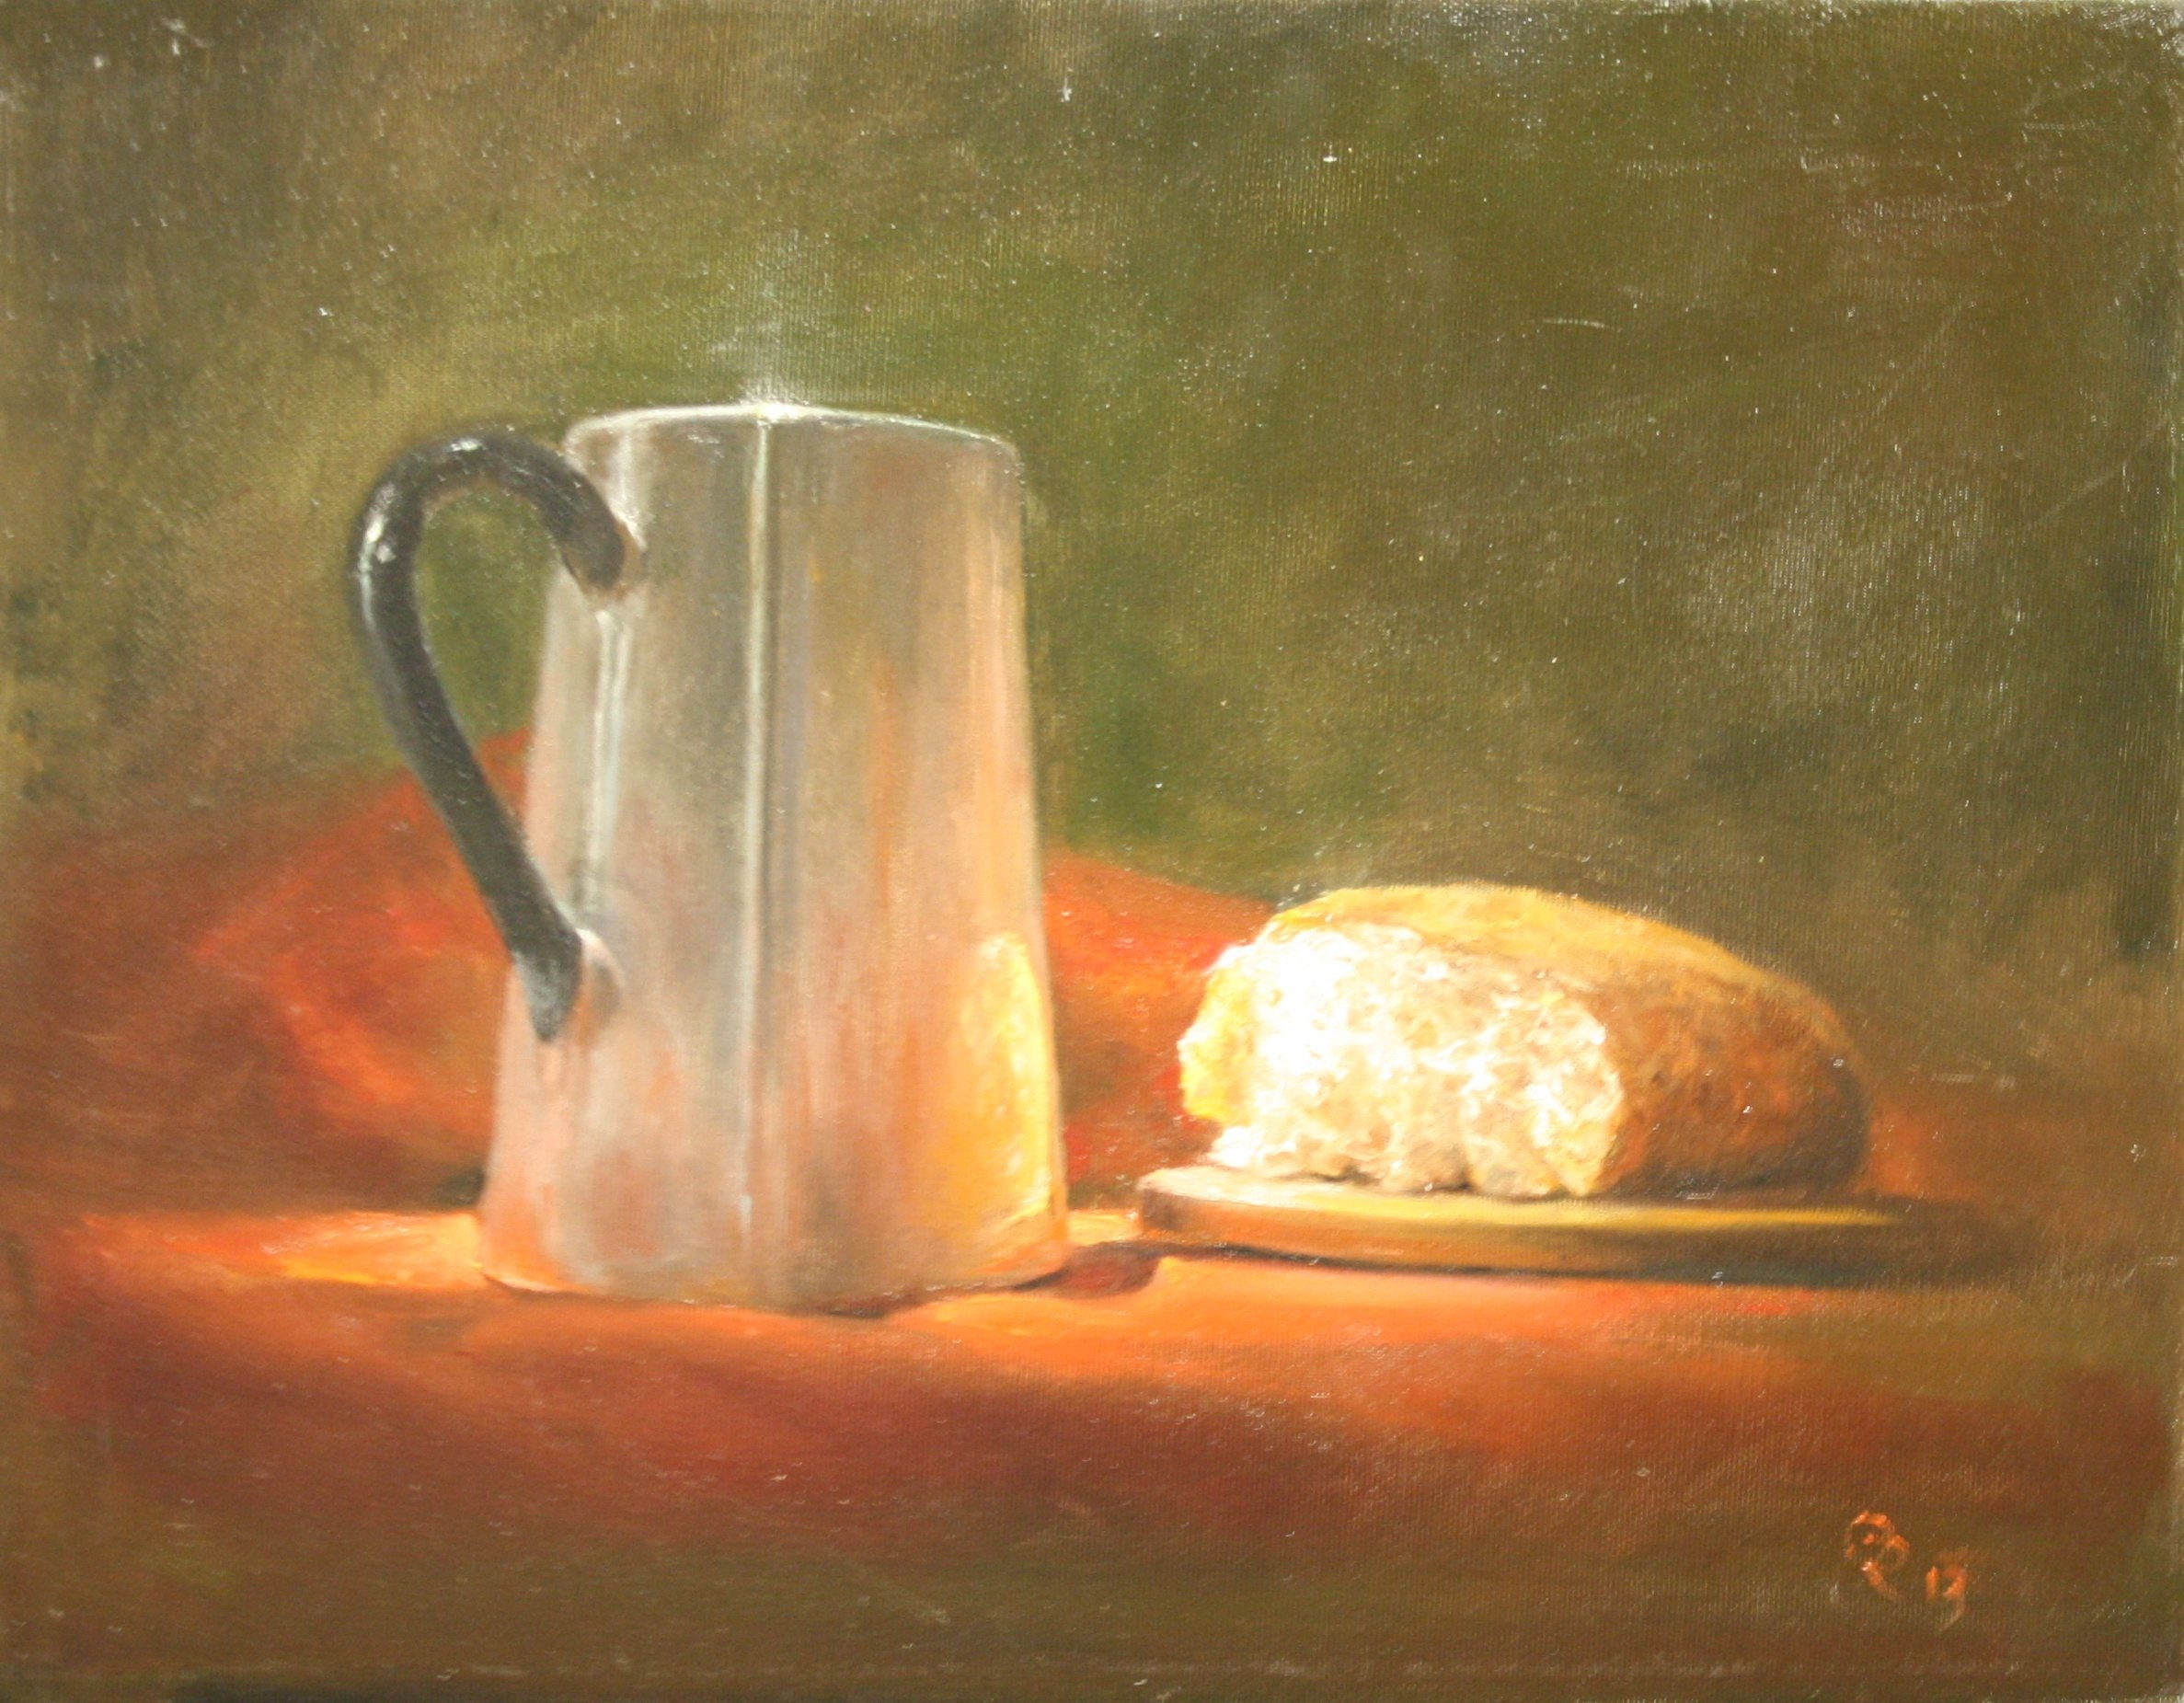 Kettle and bread